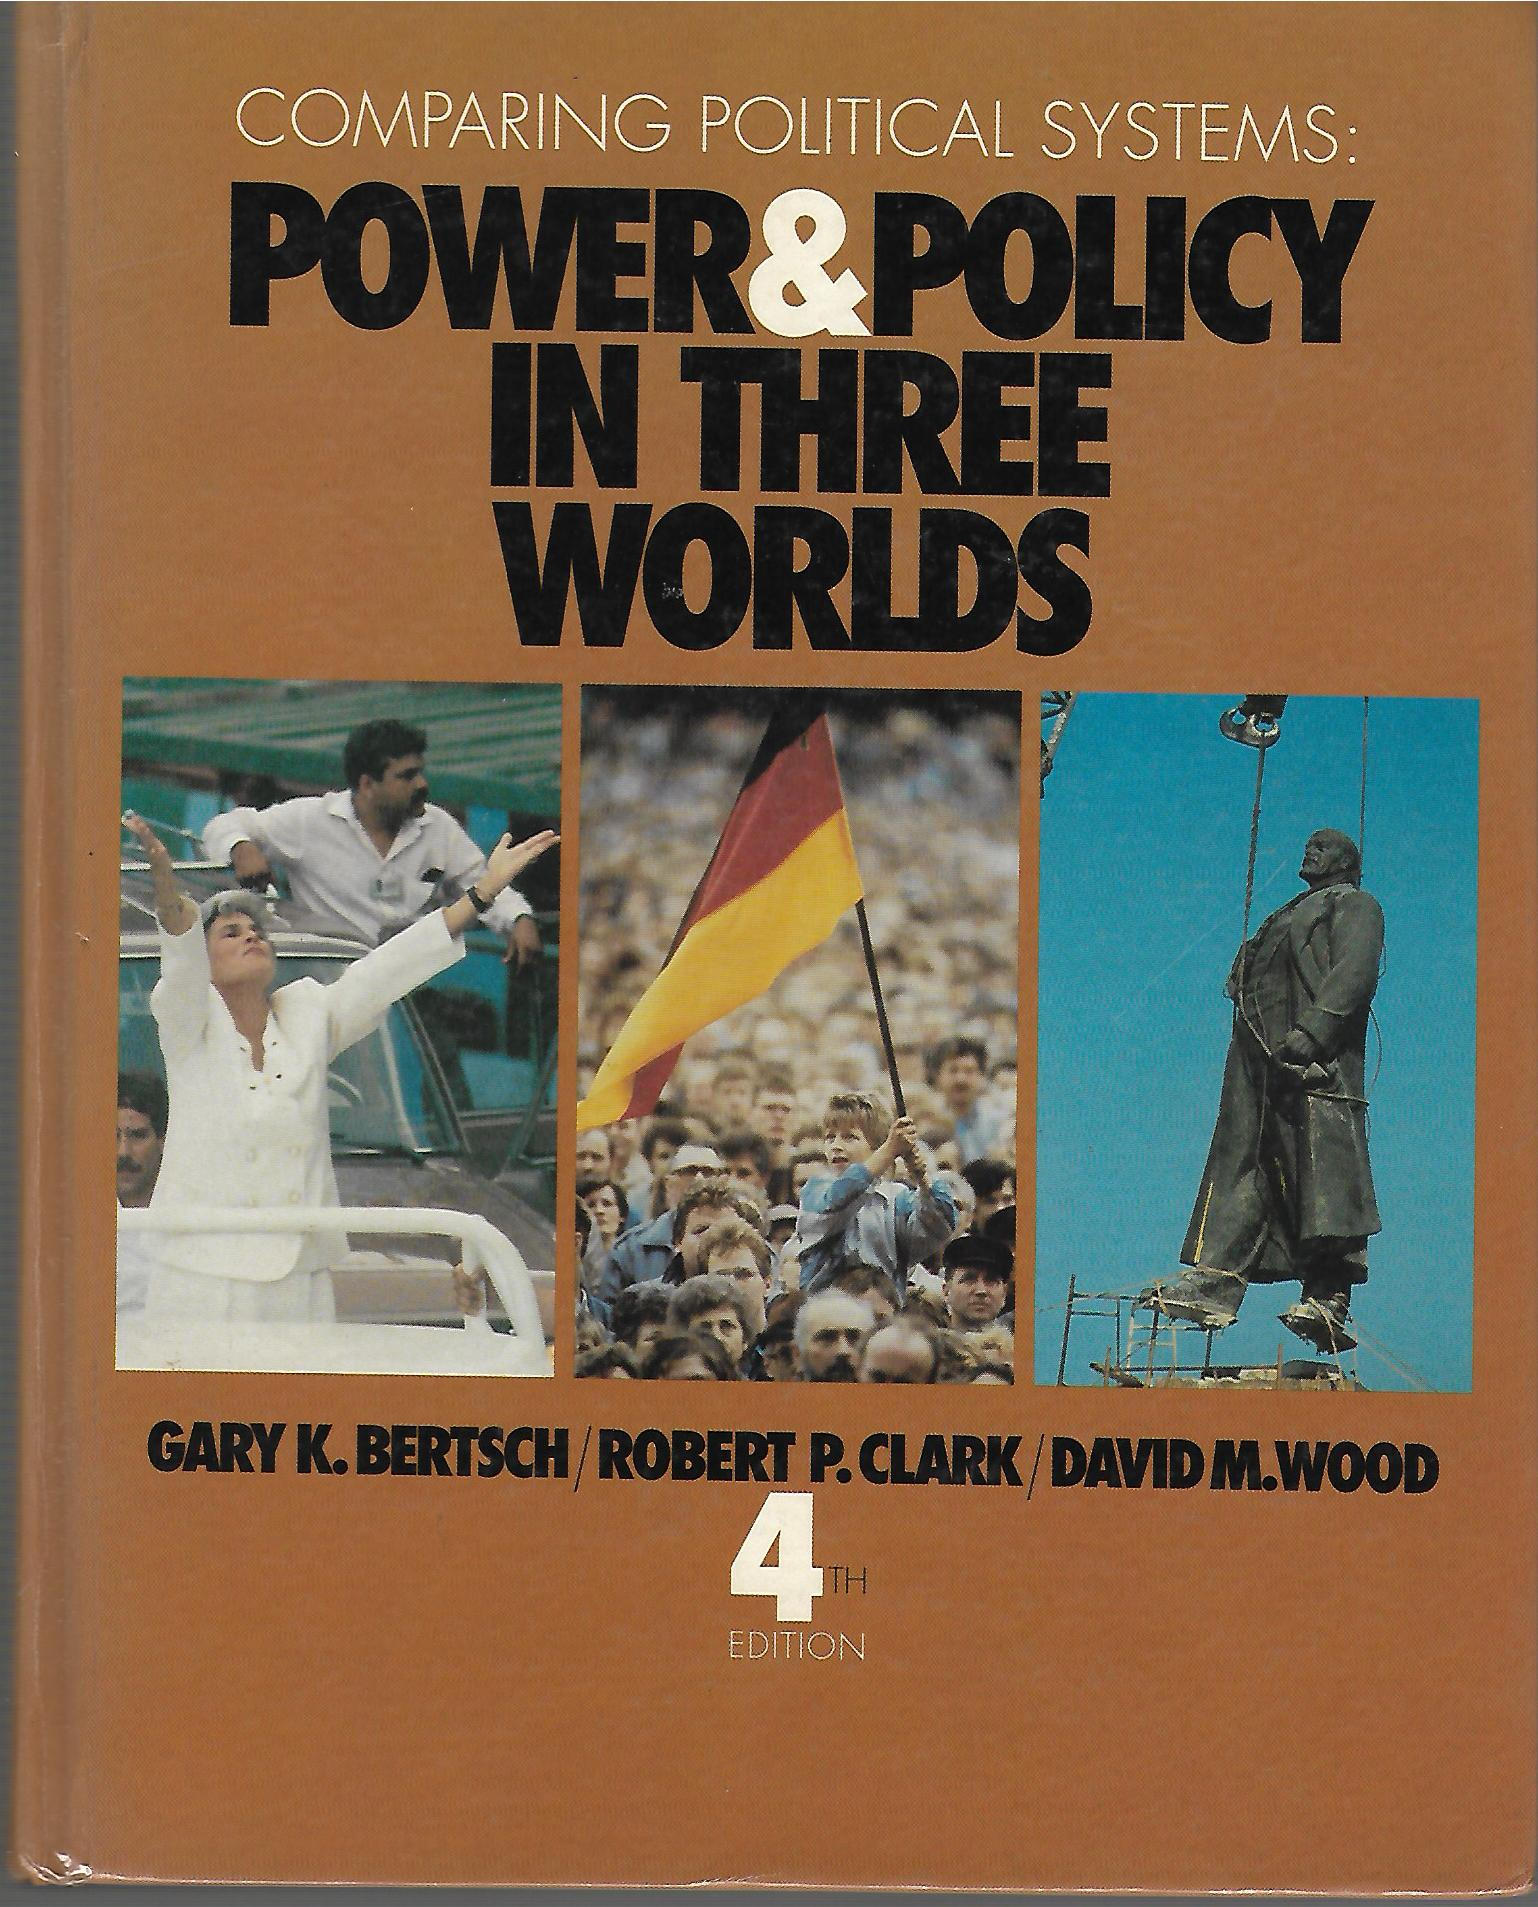 Power & Policy in Three Worlds